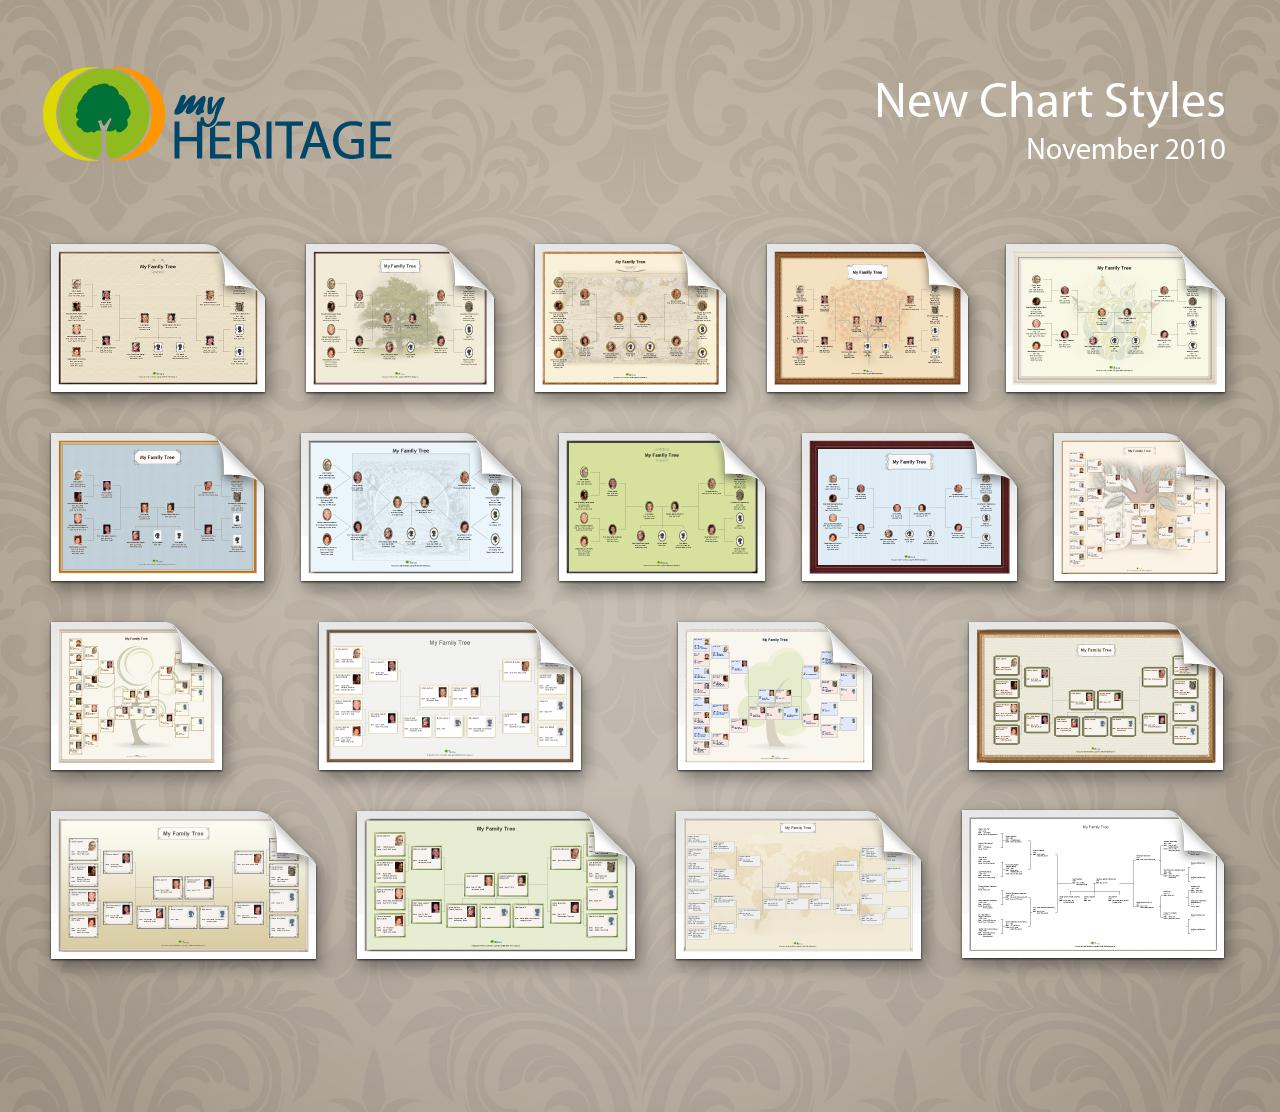 Chart Styles on MyHeritage.com